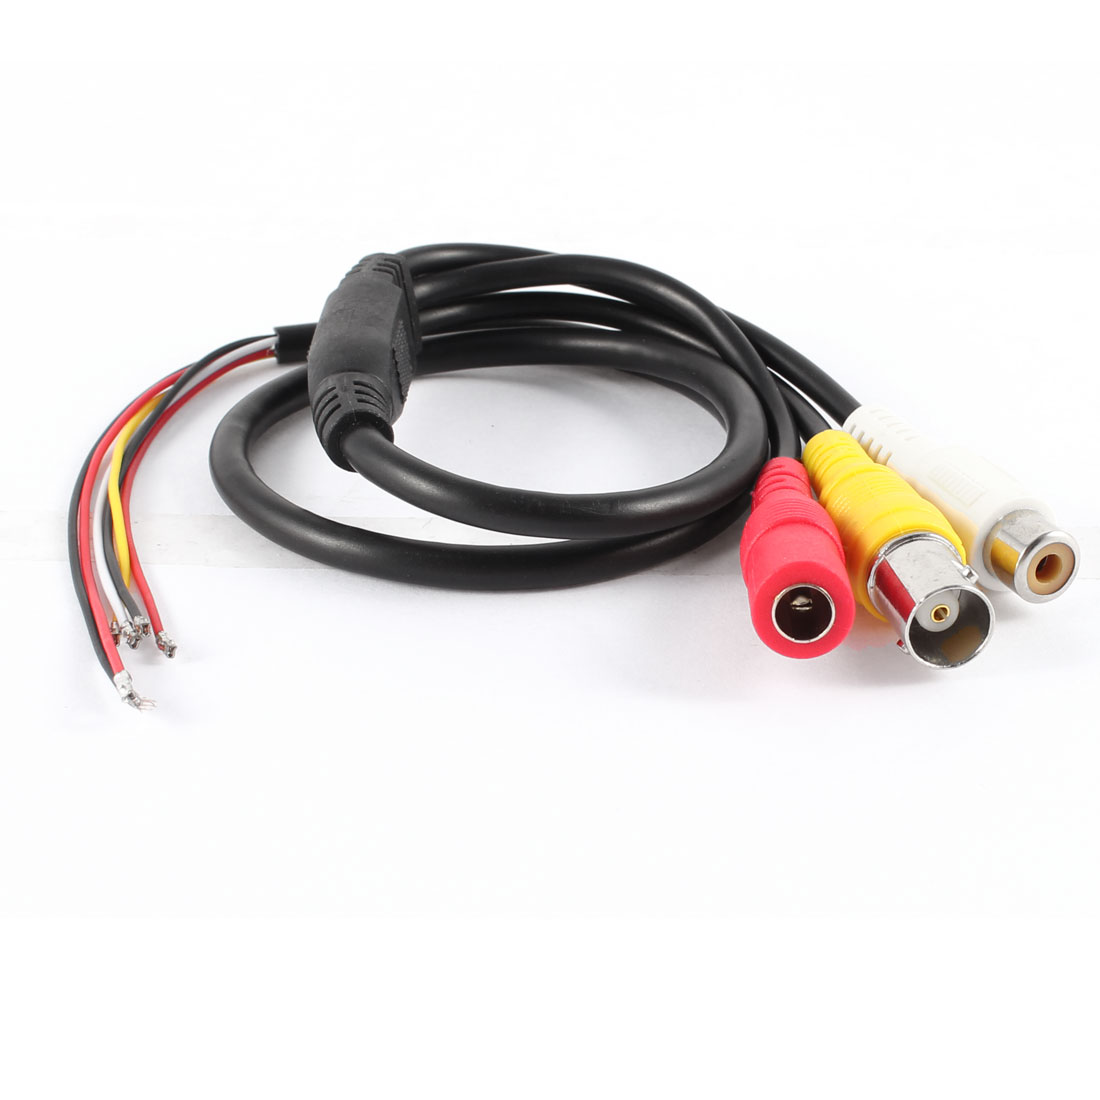 Security CCTV Camera RCA BNC DC Female Jack Video Audio Cable Black